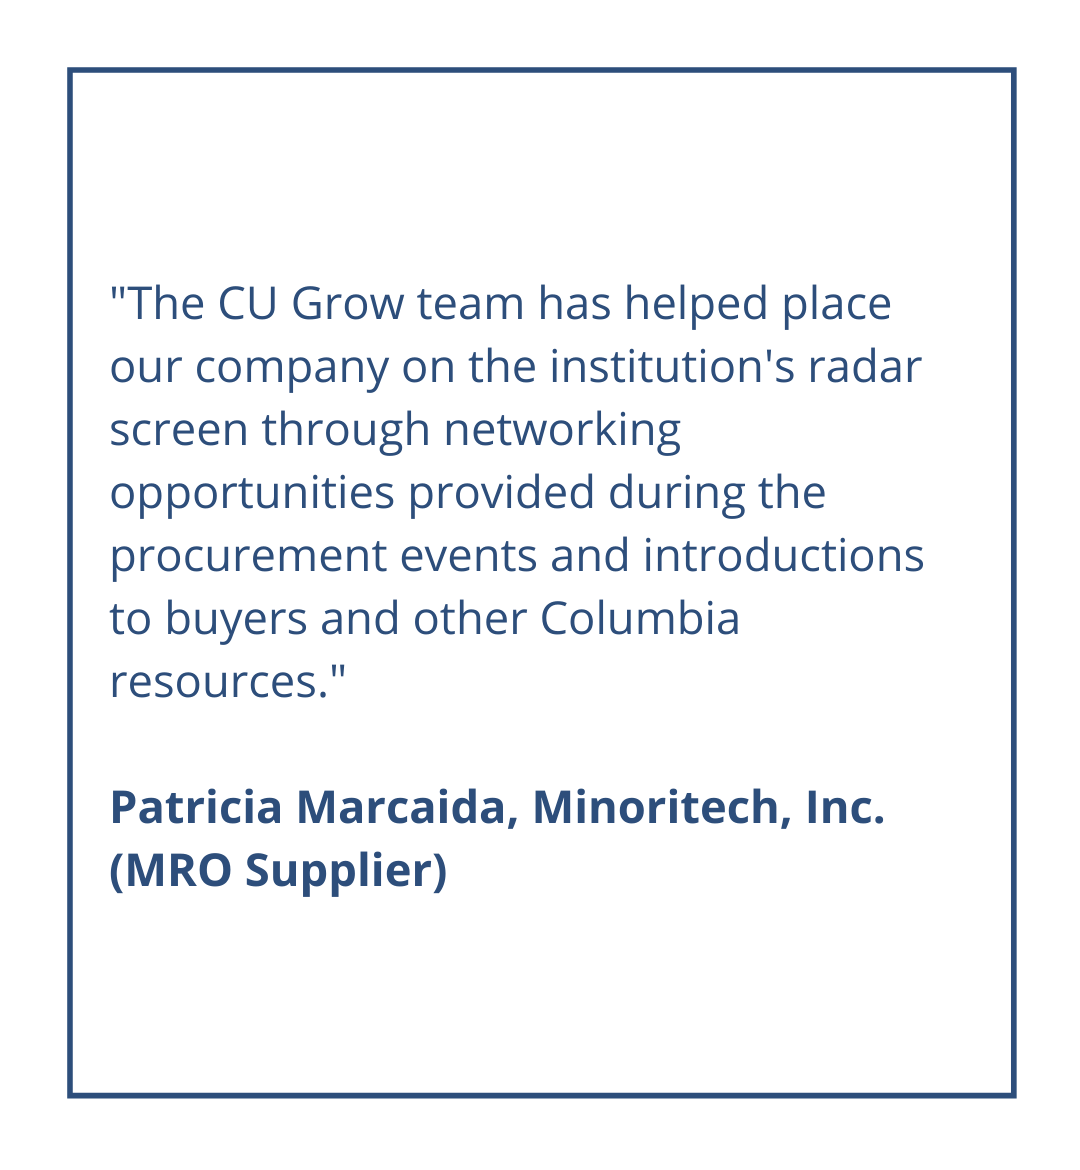 The CU Grow team has helped place our company on the institution's radar screen through networking opportunities provided during the procurement events and introductions to buyers and other Columbia resources.Patricia Marcaida, Minoritech, Inc. (MRO Supplier)